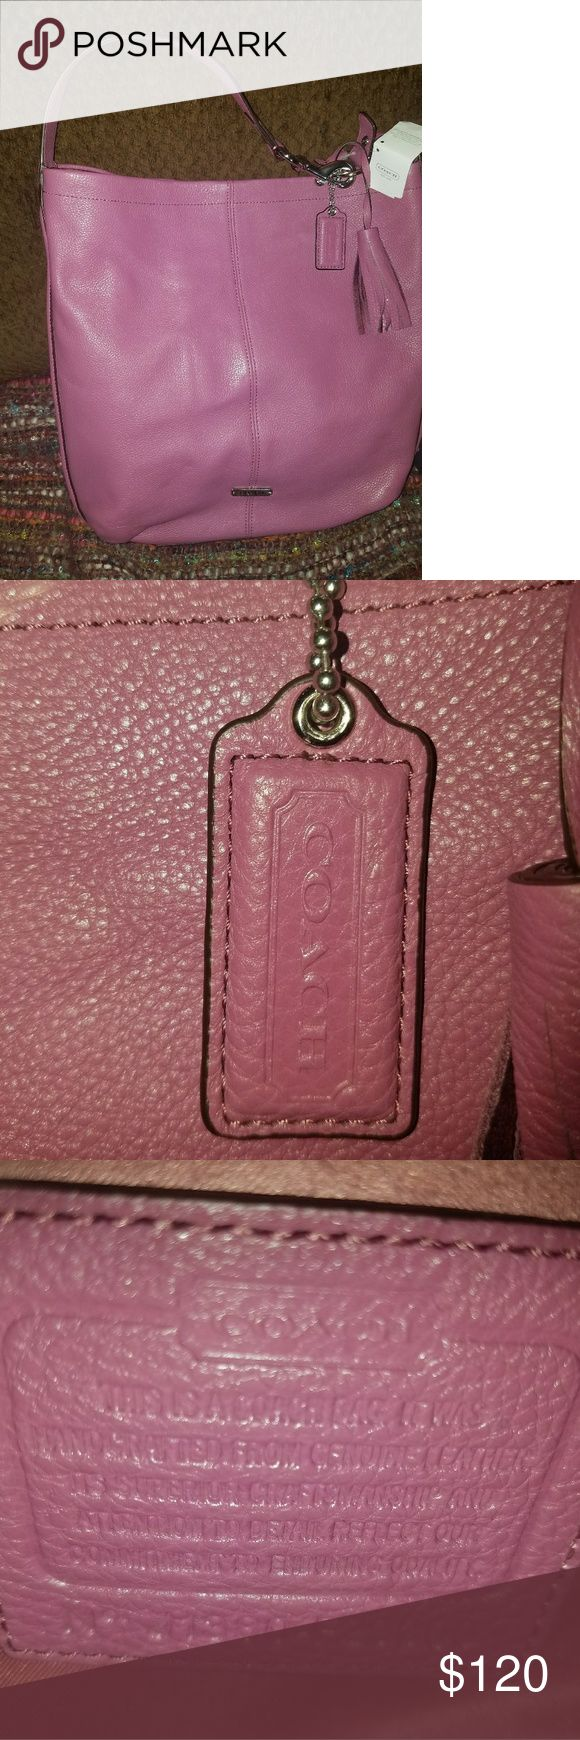 Coach Rose Pebbled Leather Hobo Coach Rose Pebbled Leather Hobo, BNWT still attached, 13L x14H x4W Coach Bags Hobos